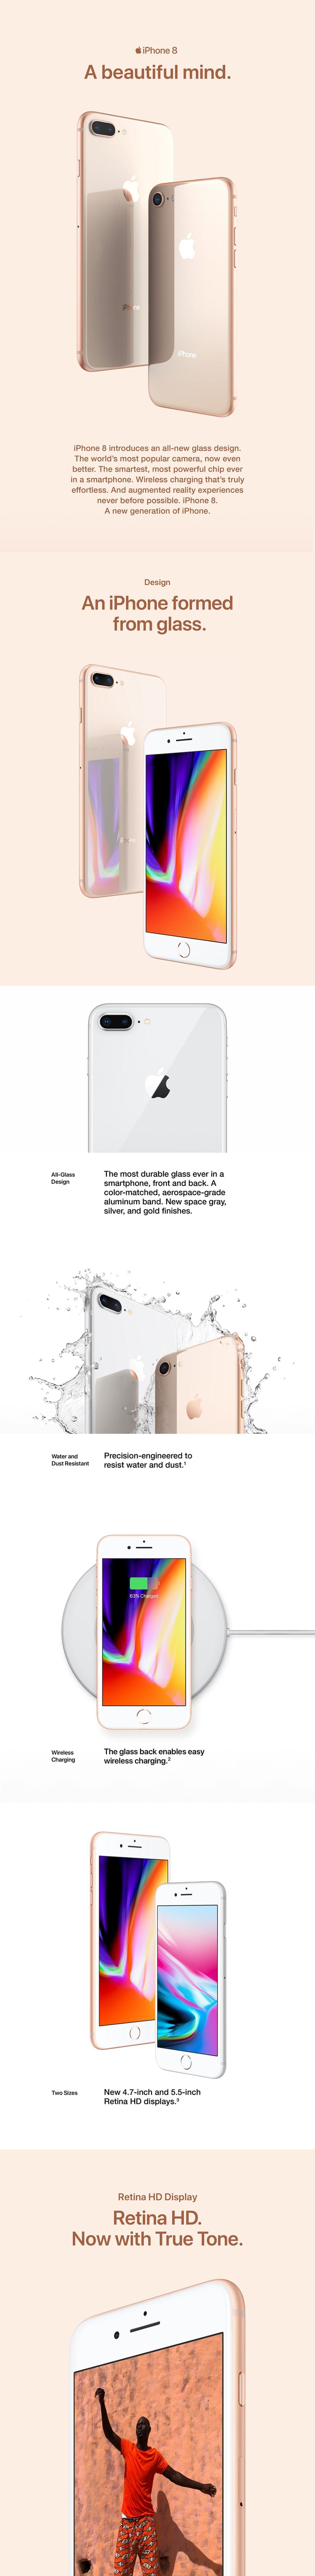 iPhone 8 A beautiful mind. Introduces an all new glass design. The world's most popular camera, now even the better. The smartest, most powerful chip ever in a smartphone. Wireless charging that's truly effortless. And augmented reality experiences never before possible. iPhone 8 a new generation of iPhone.